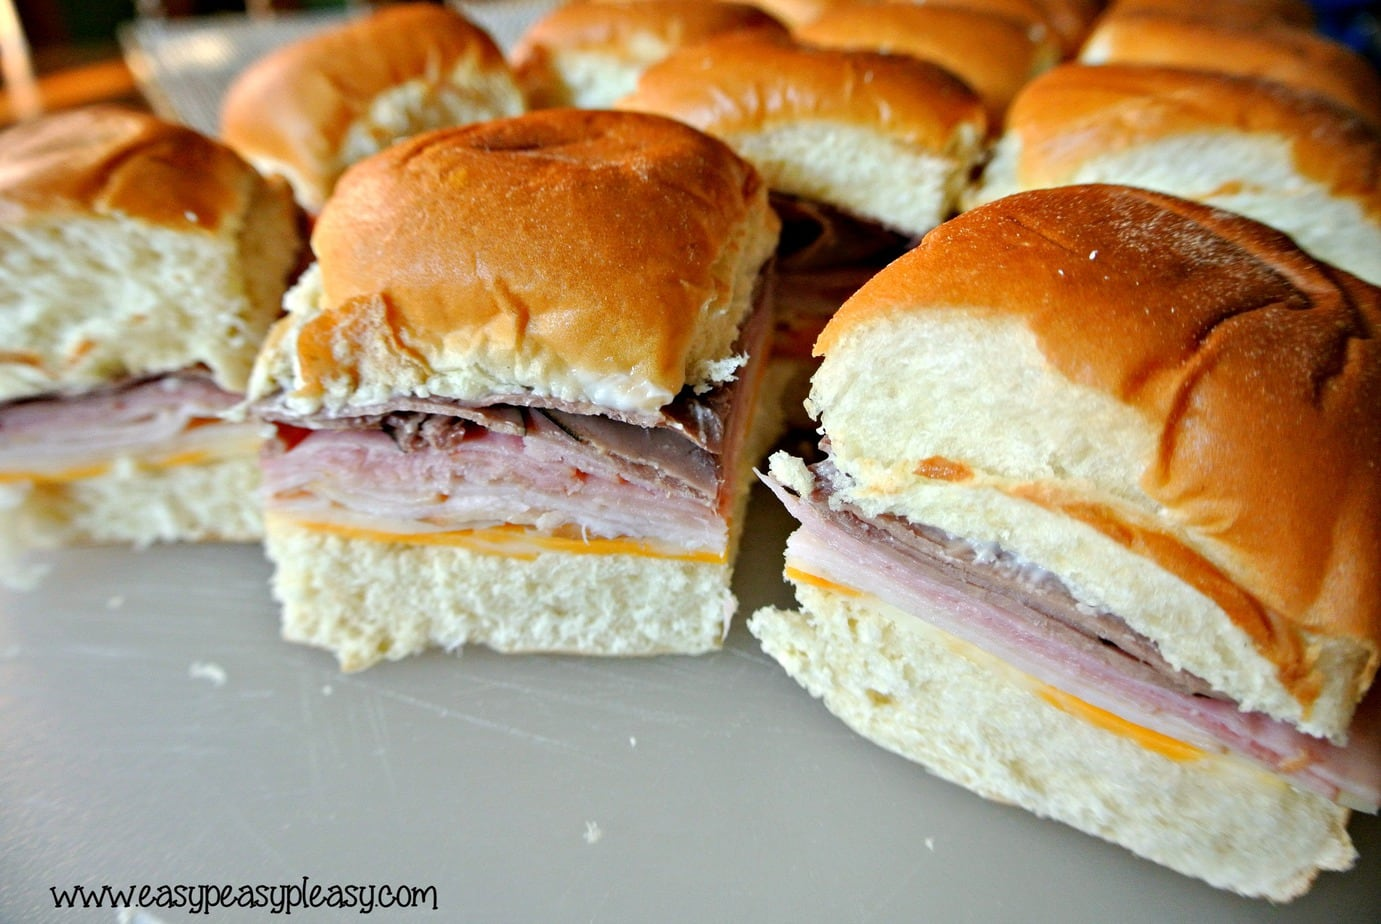 Easy To Go Sandwiches with no cleanup! Perfect for your ice chest!